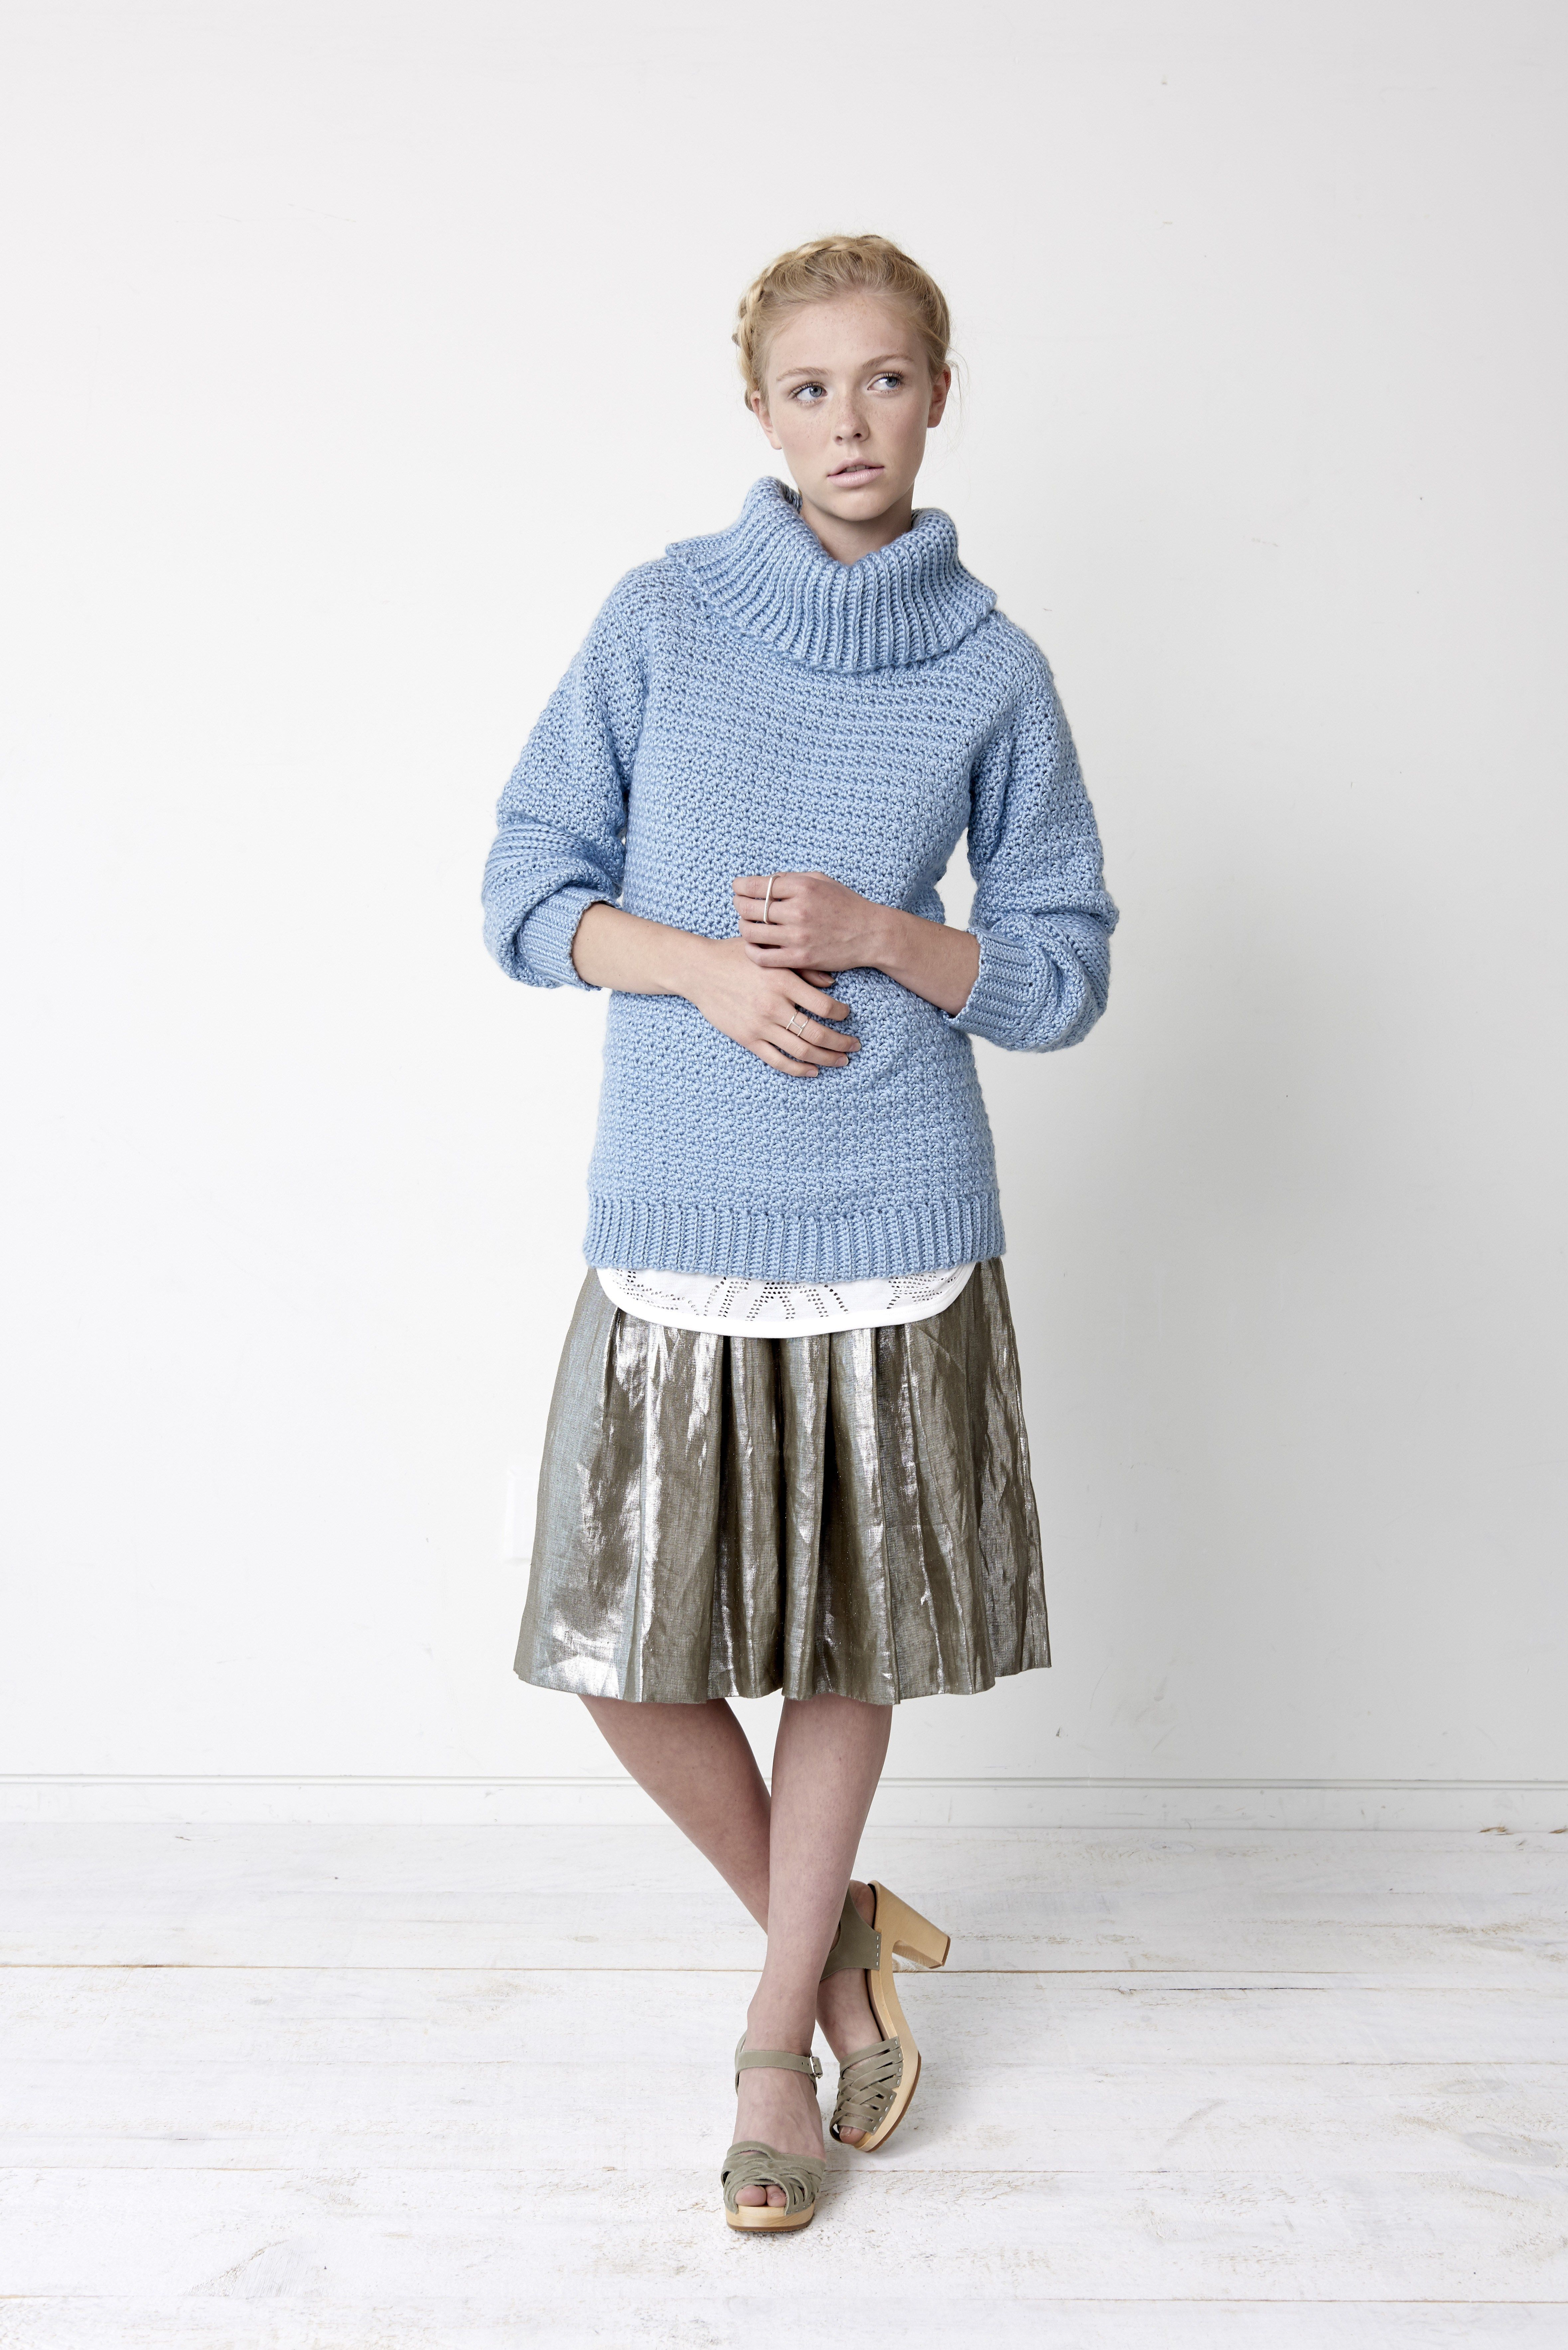 Crochet Sweater Patterns that Look like Knit